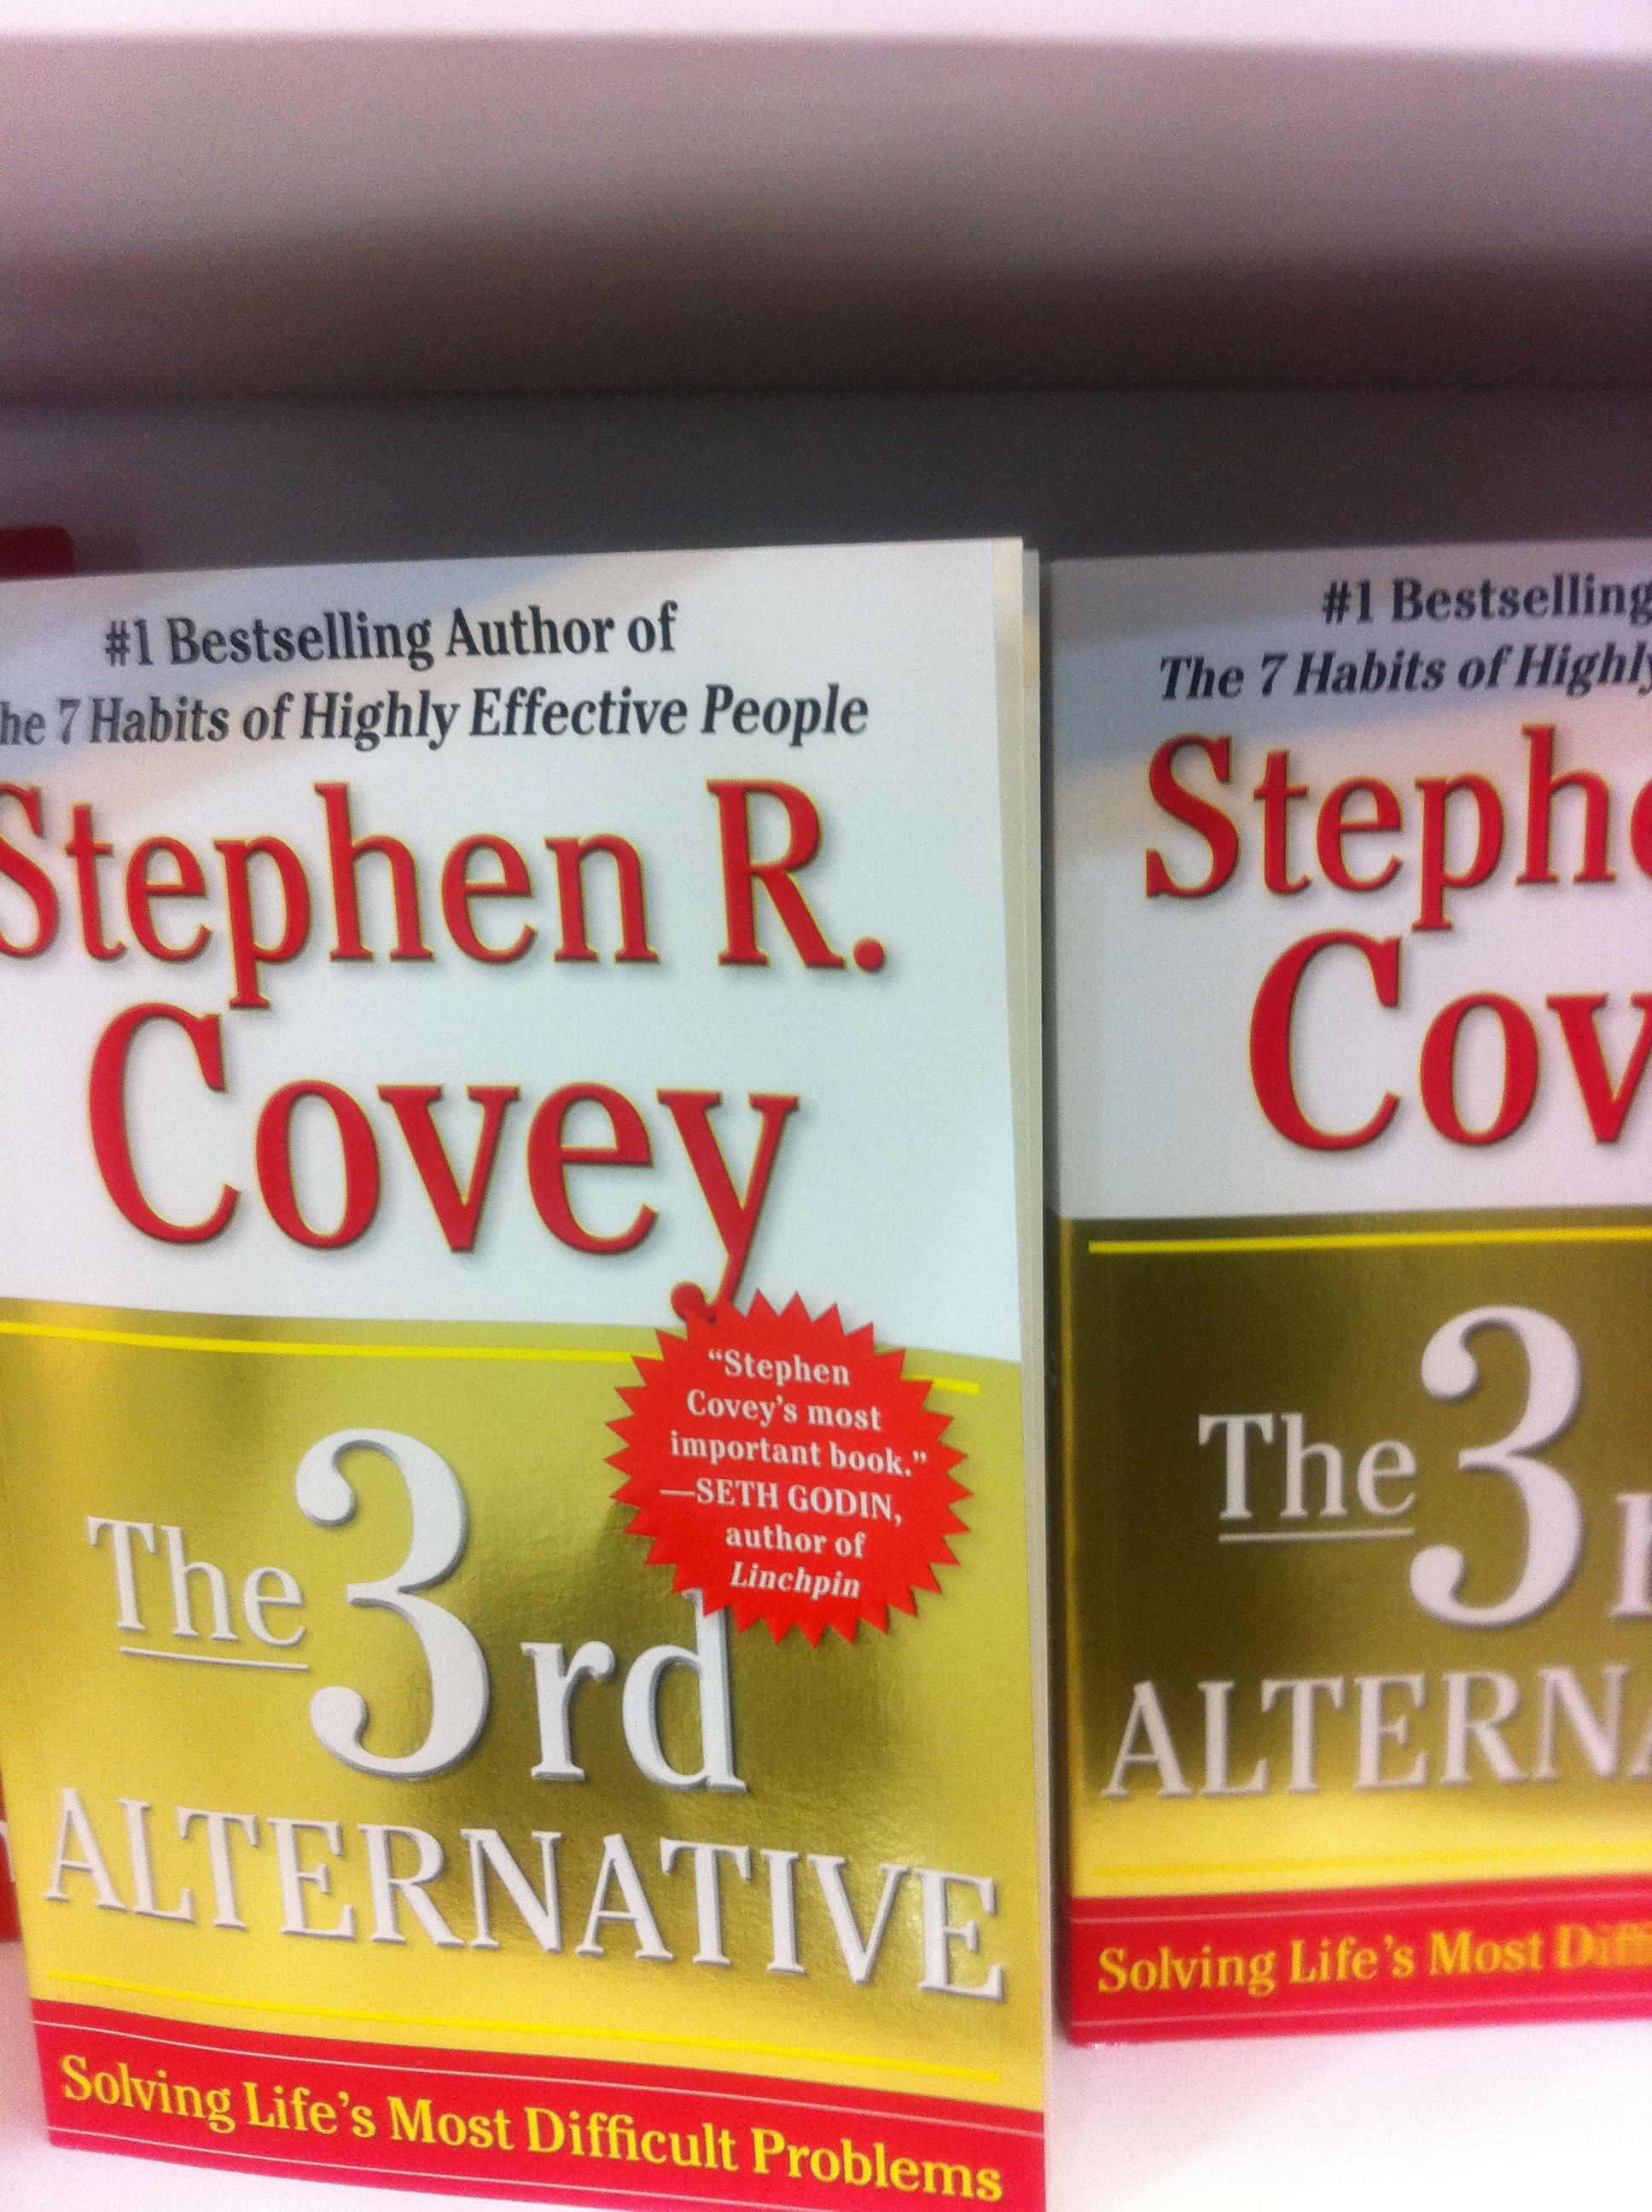 The 3rd Alternative: Solving Lifes Most Difficult Problems by Stephen R. Covey